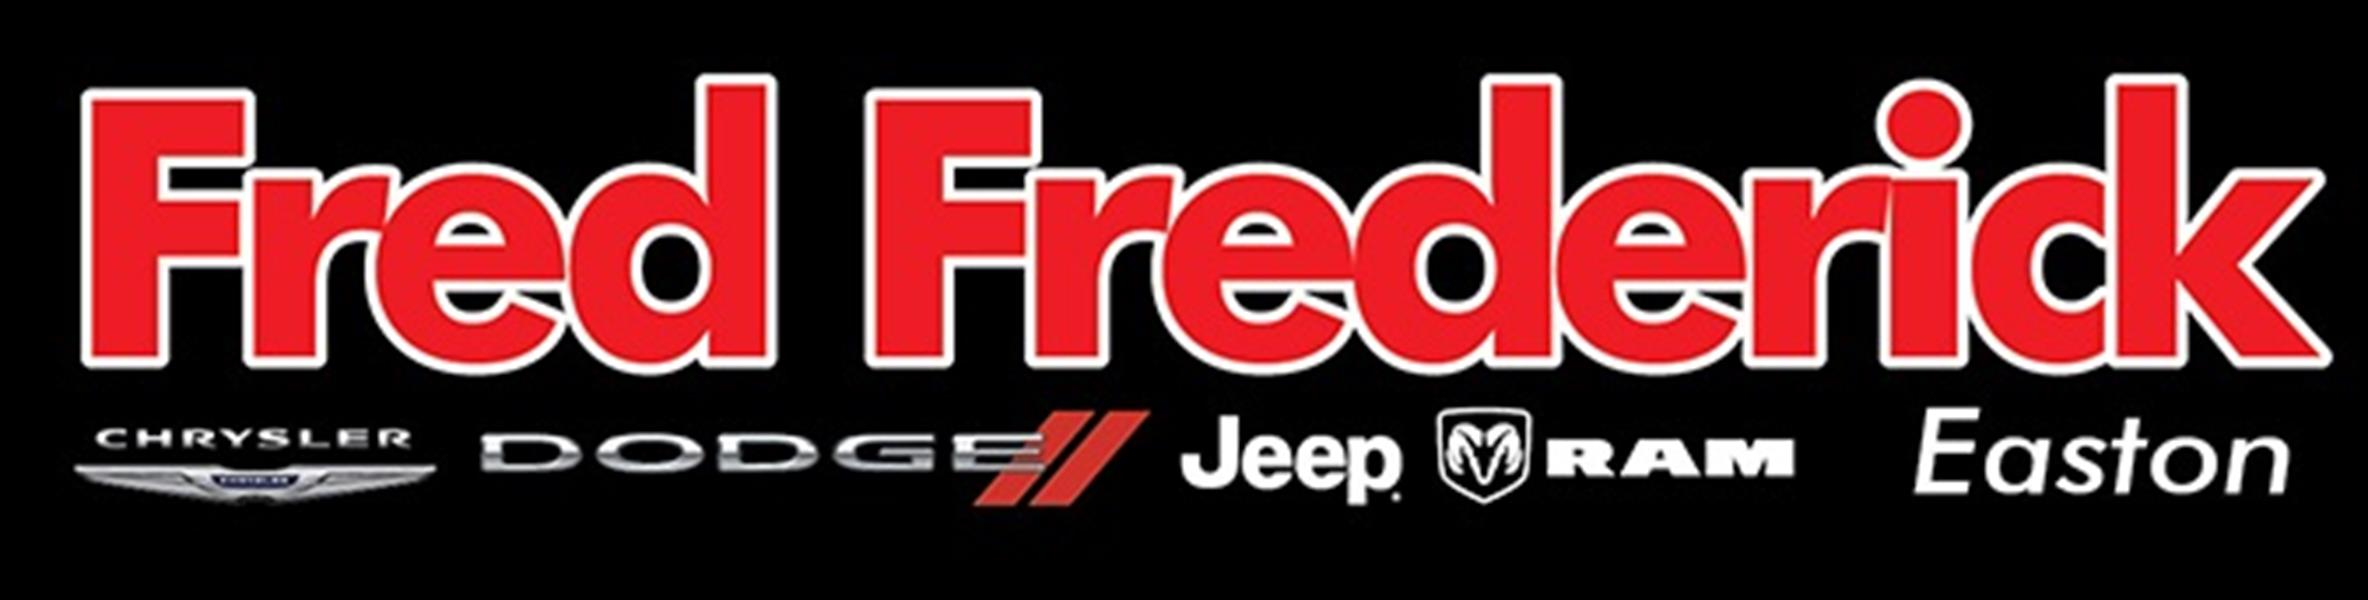 Fred Frederick Chrysler Dodge Jeep Easton